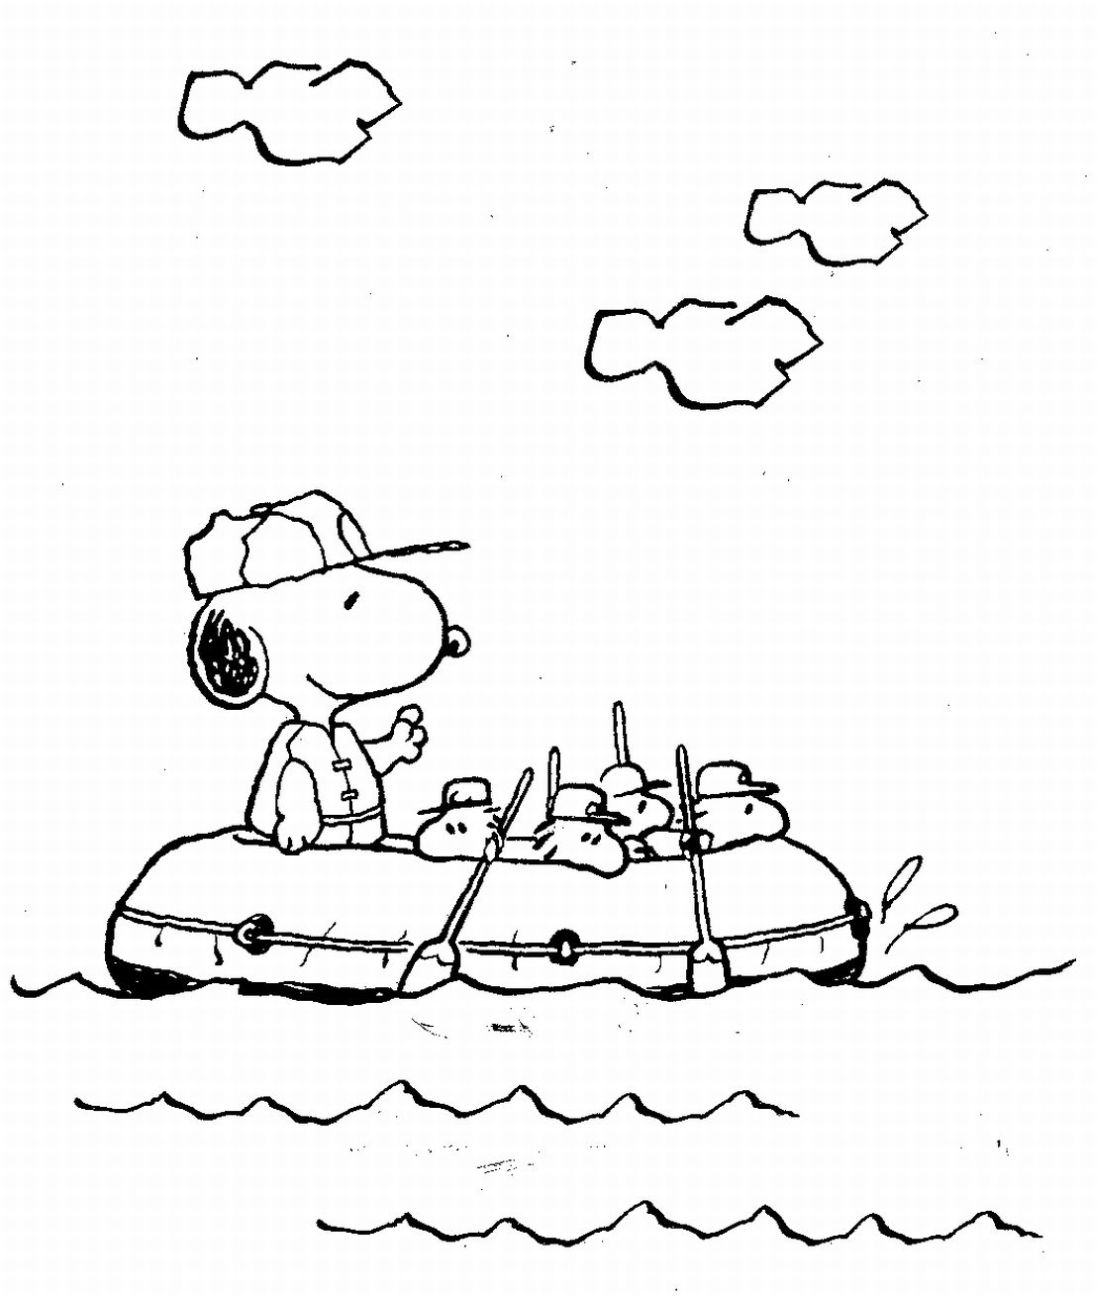 1098x1297 Free Printable Snoopy Coloring Pages For Kids